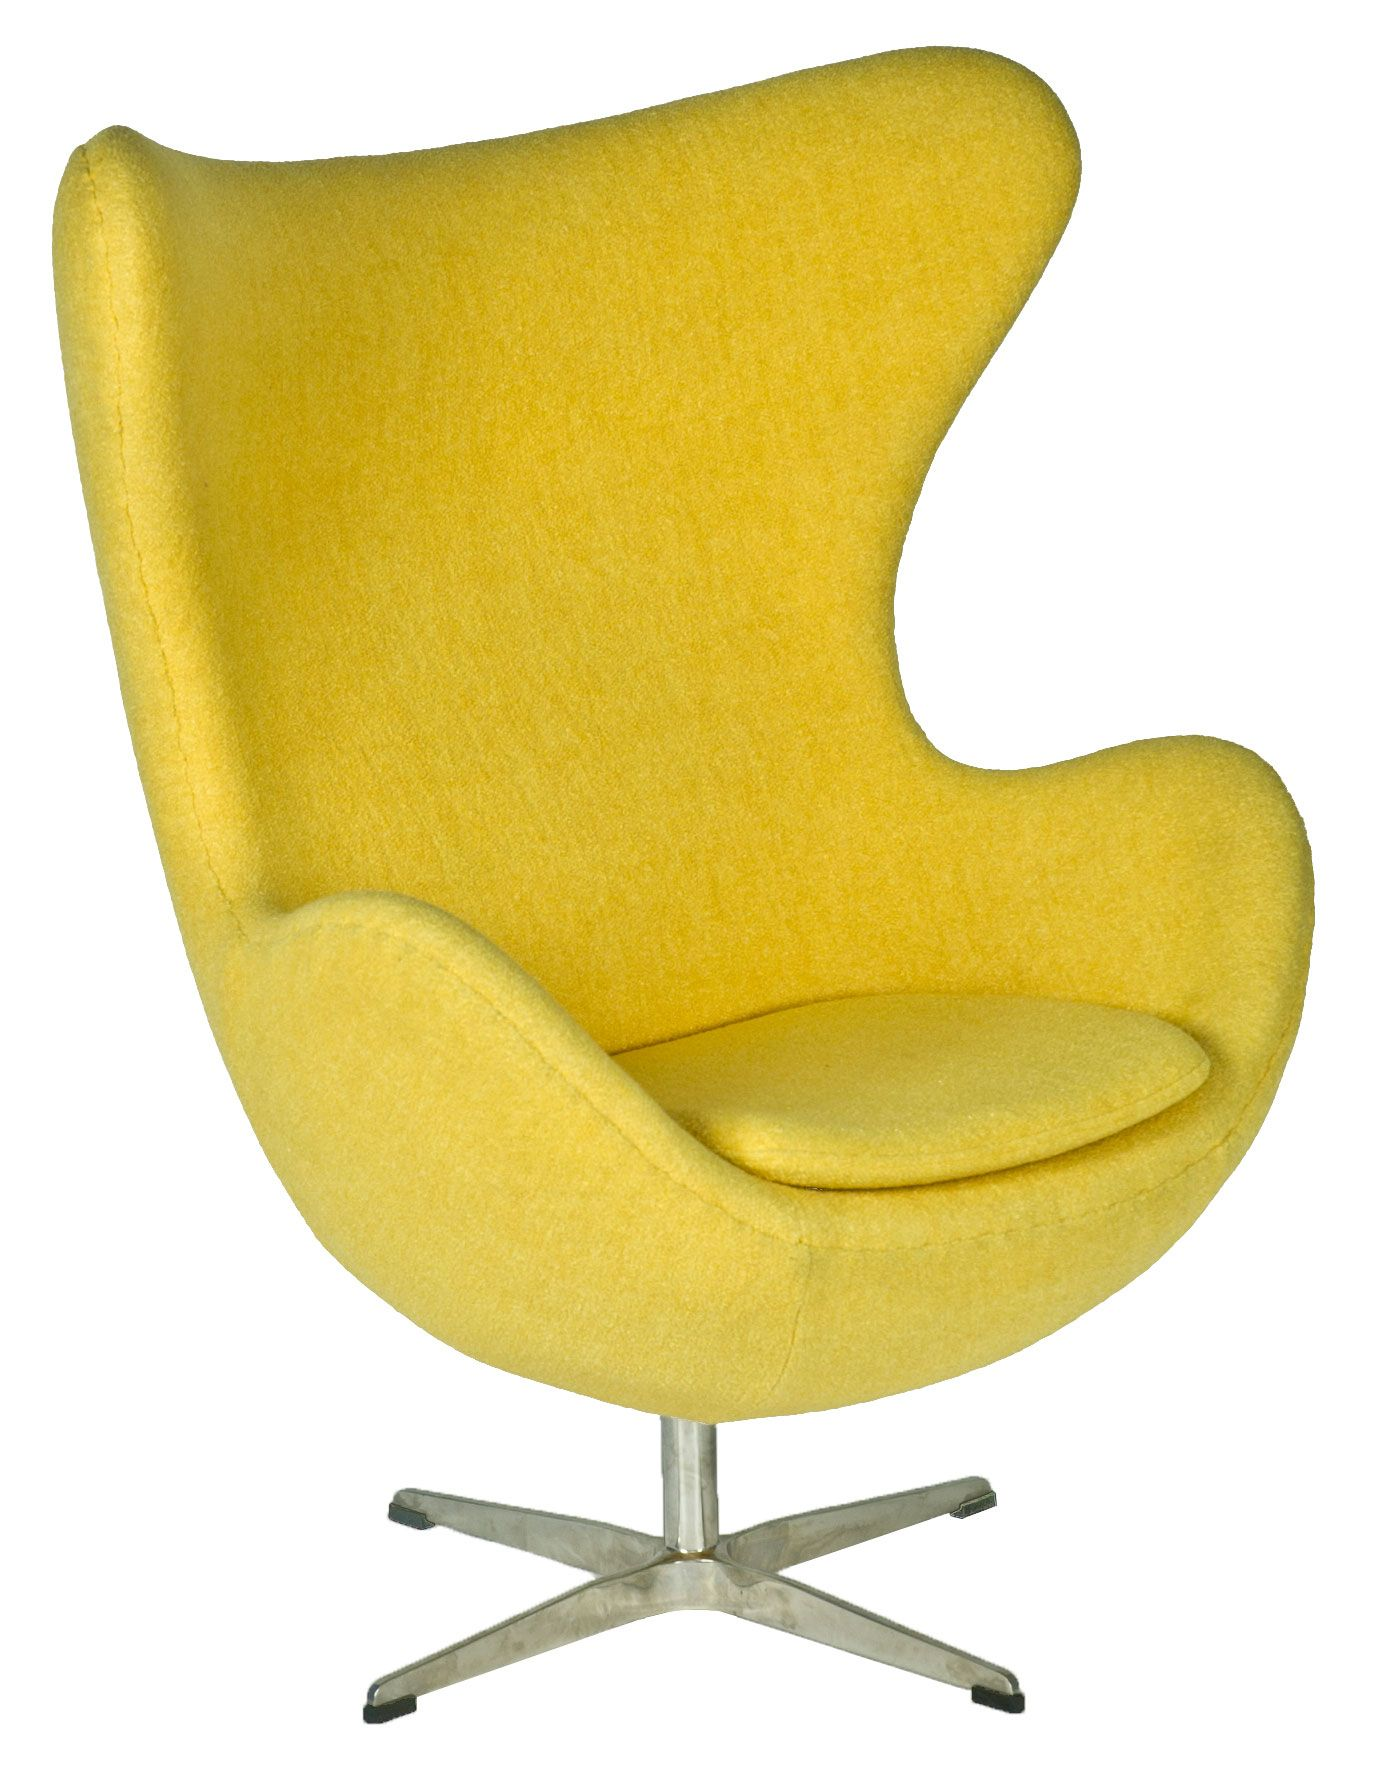 Yellow Egg Chair Egg Chair Inspired By Designs Of Arne Jacobsen